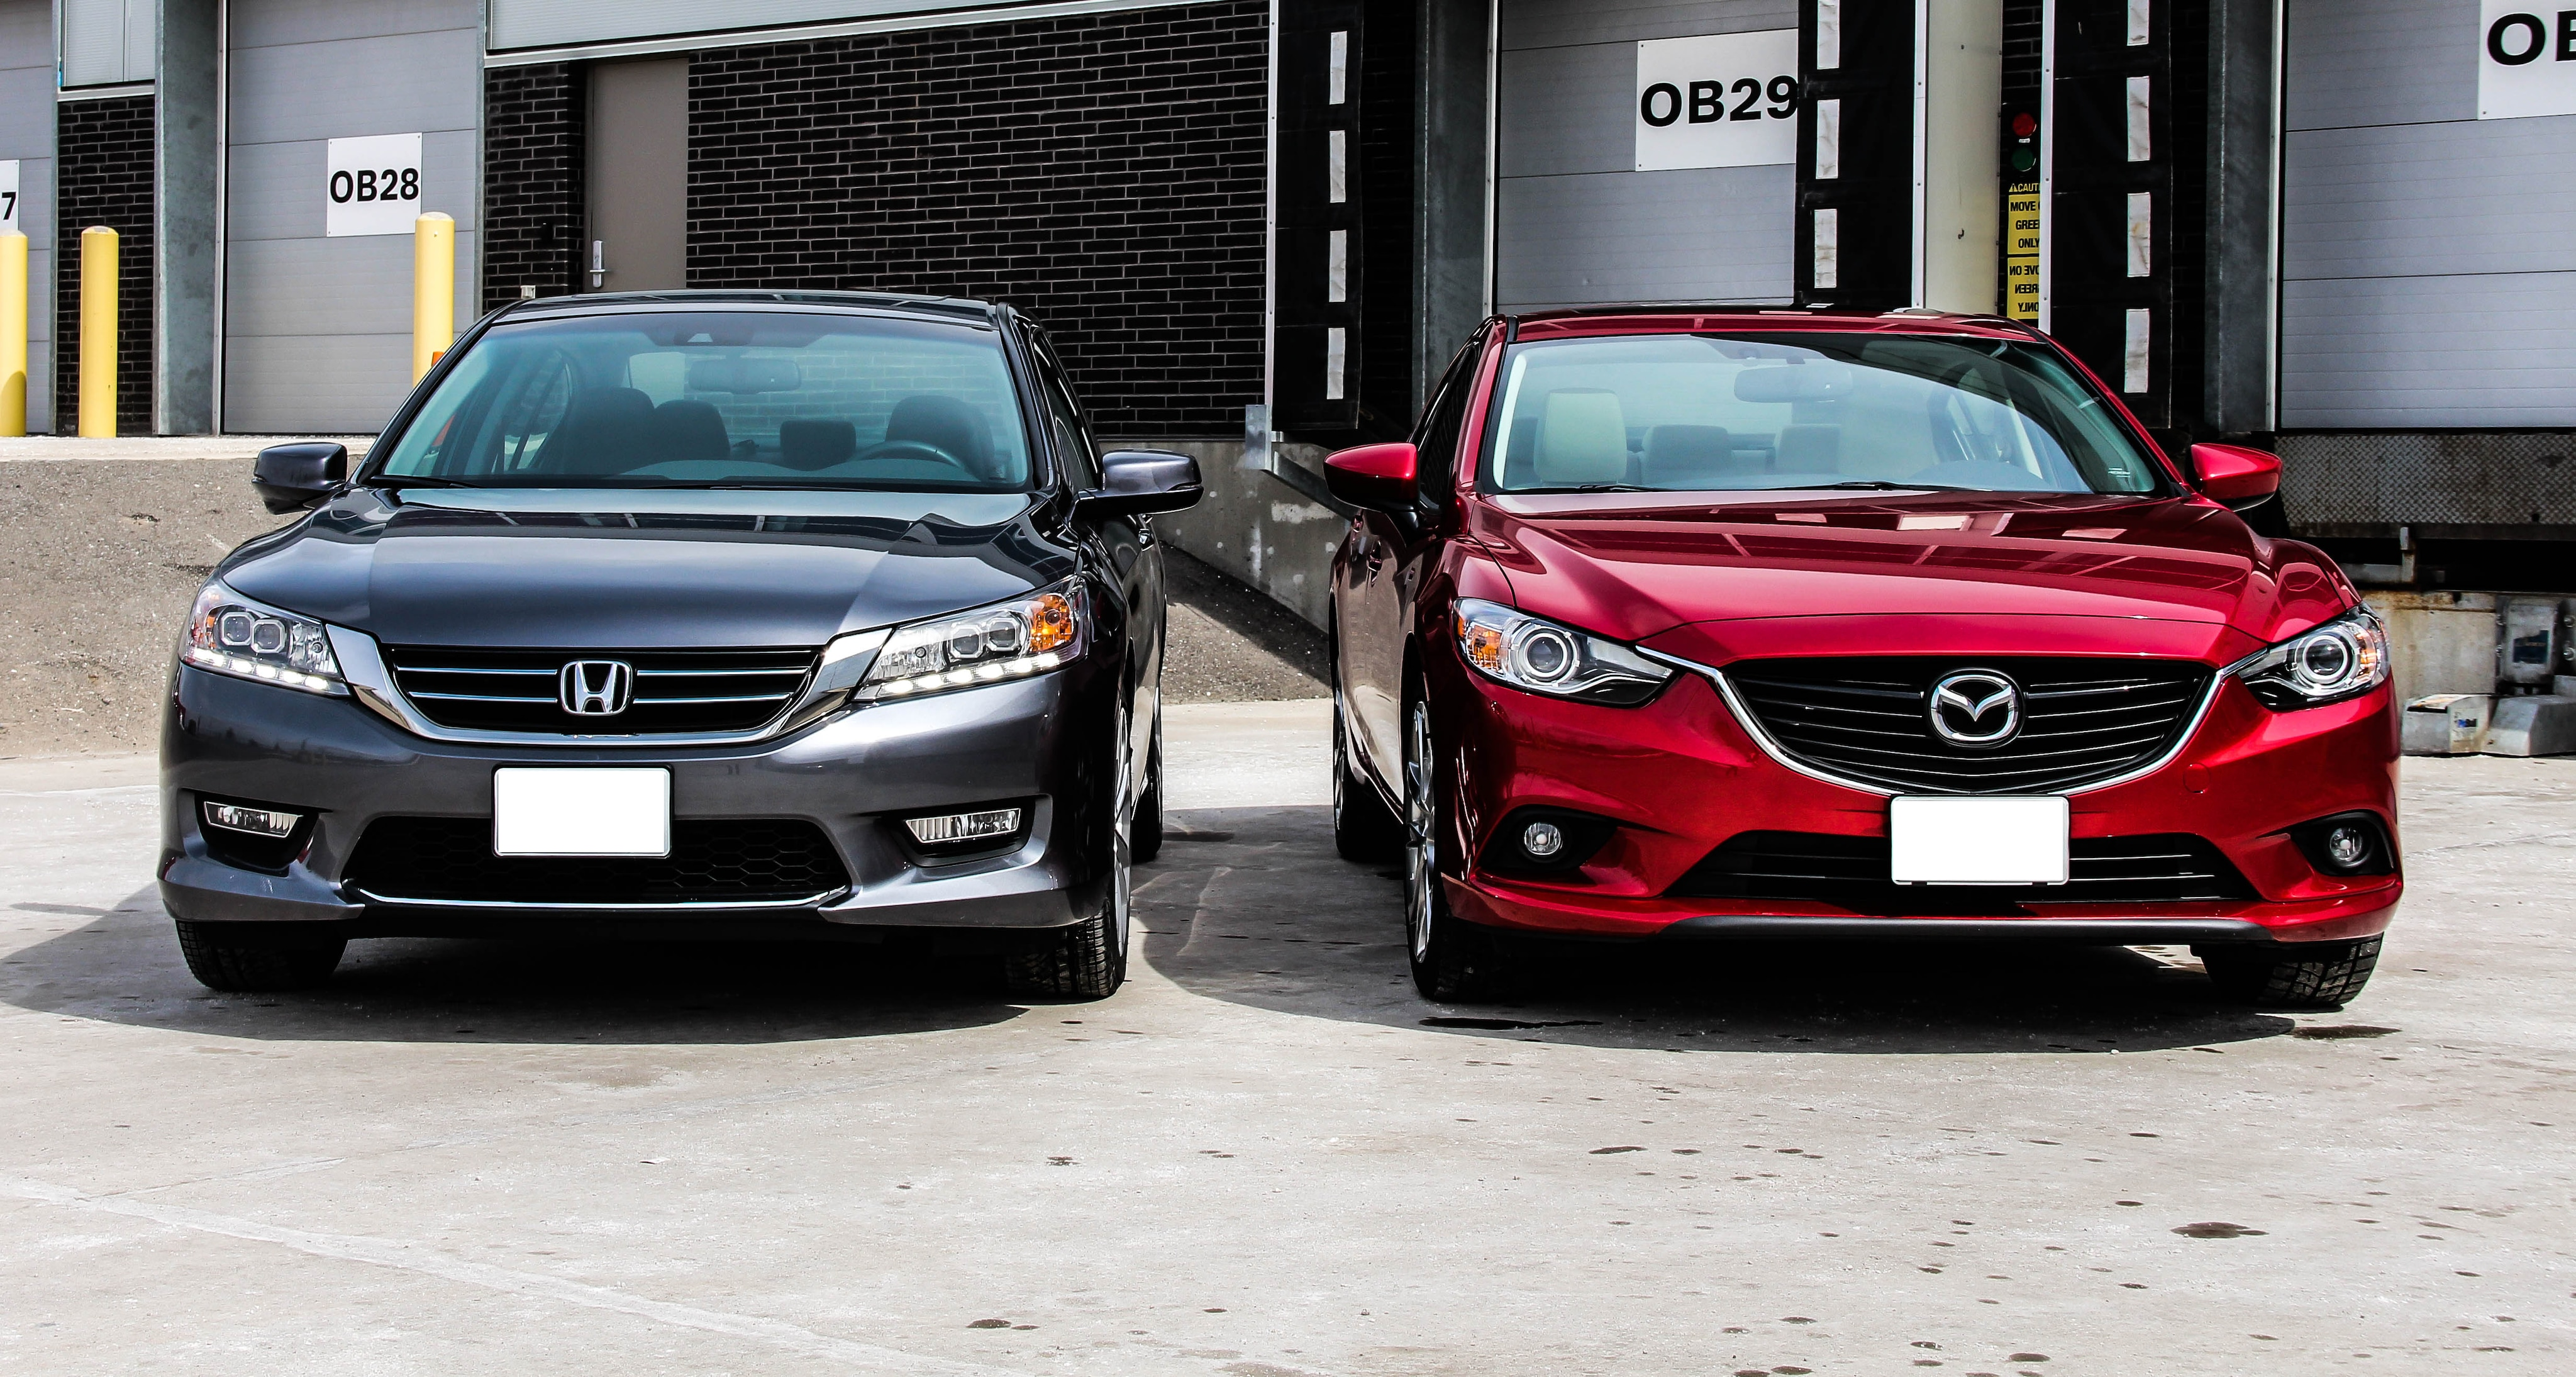 VWVortexcom  Which family car to buy Mazda 6 vs Honda Accord or